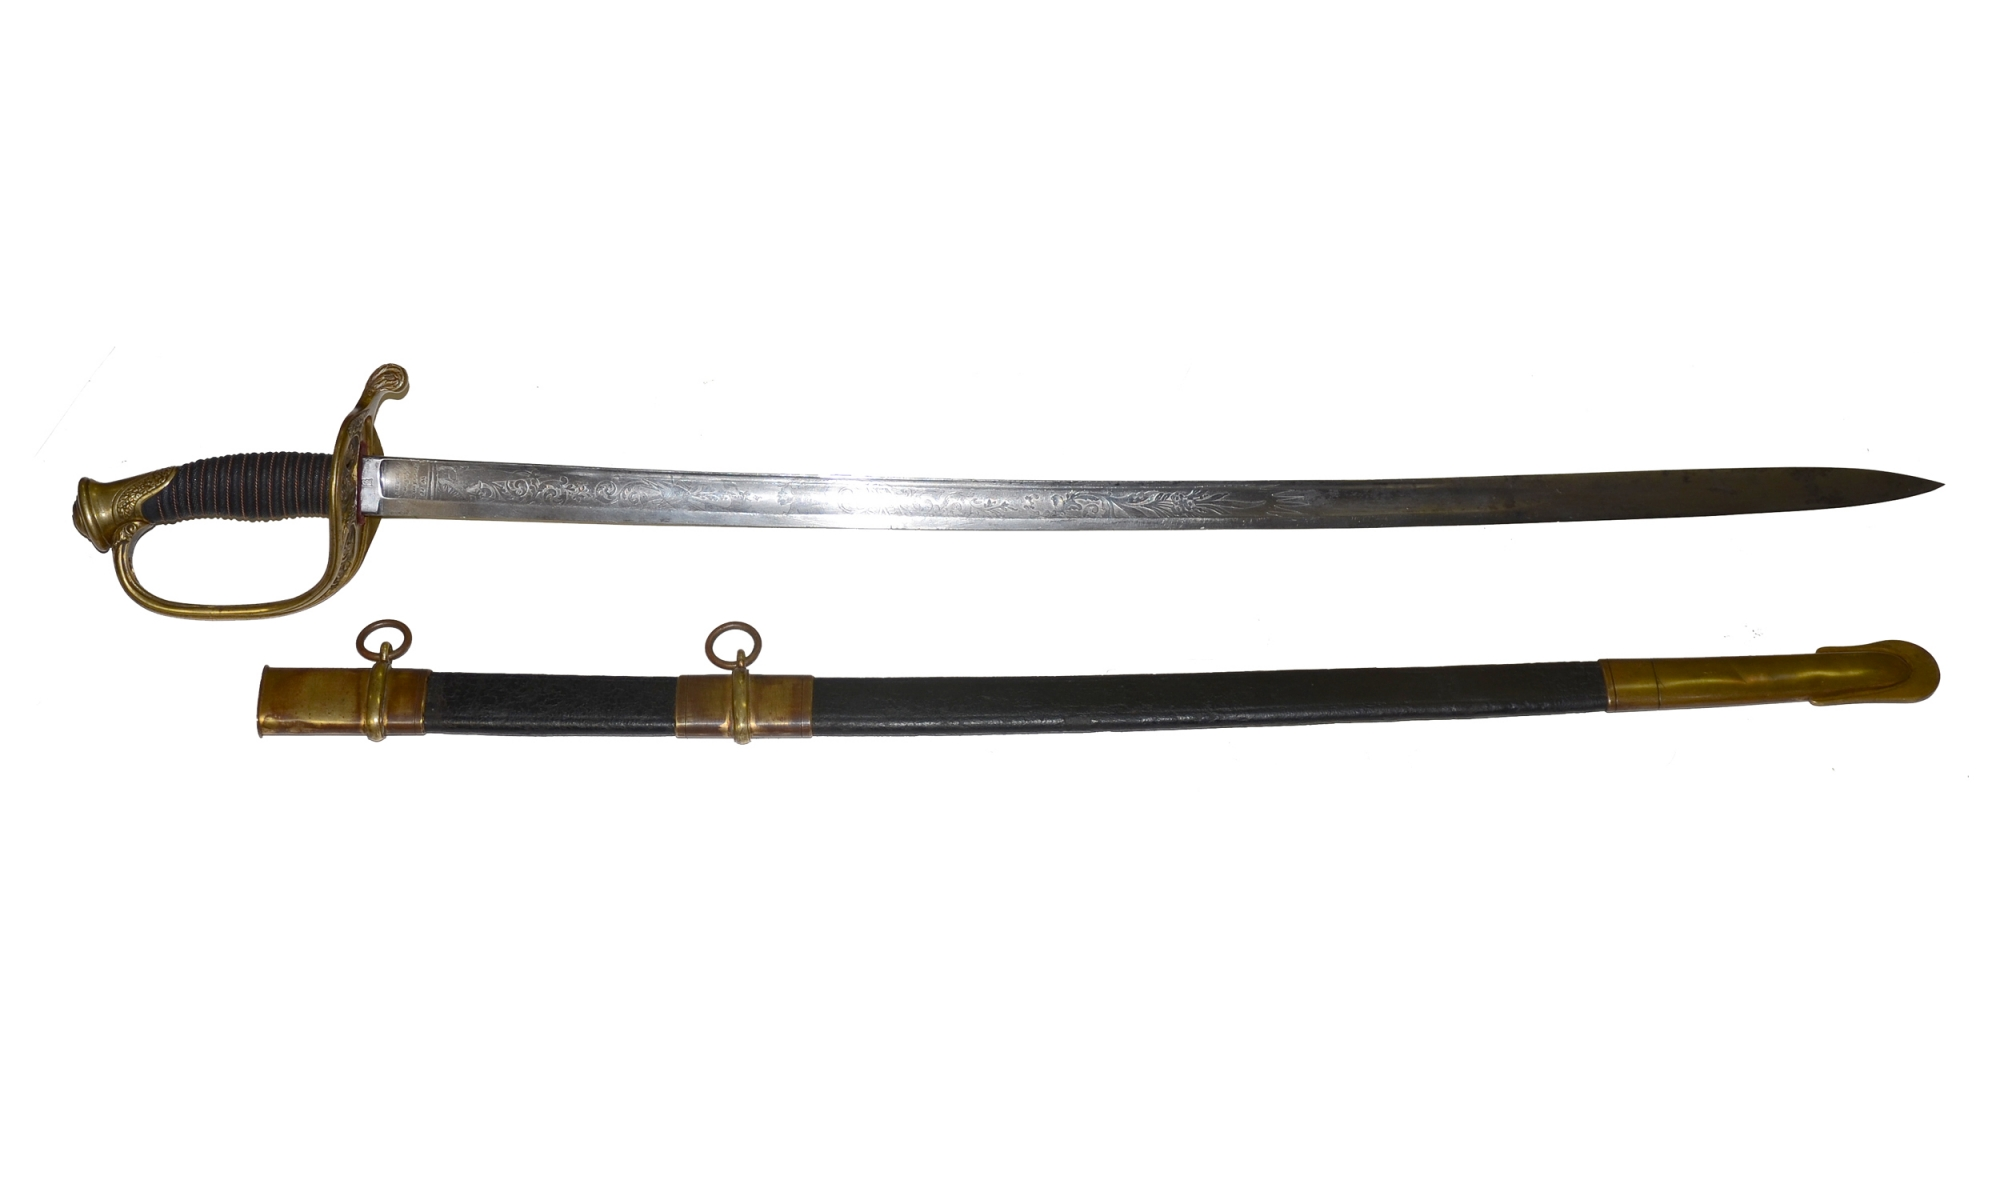 HORSTMANN M-1850 FOOT OFFICER'S SWORD WITH SCABBARD